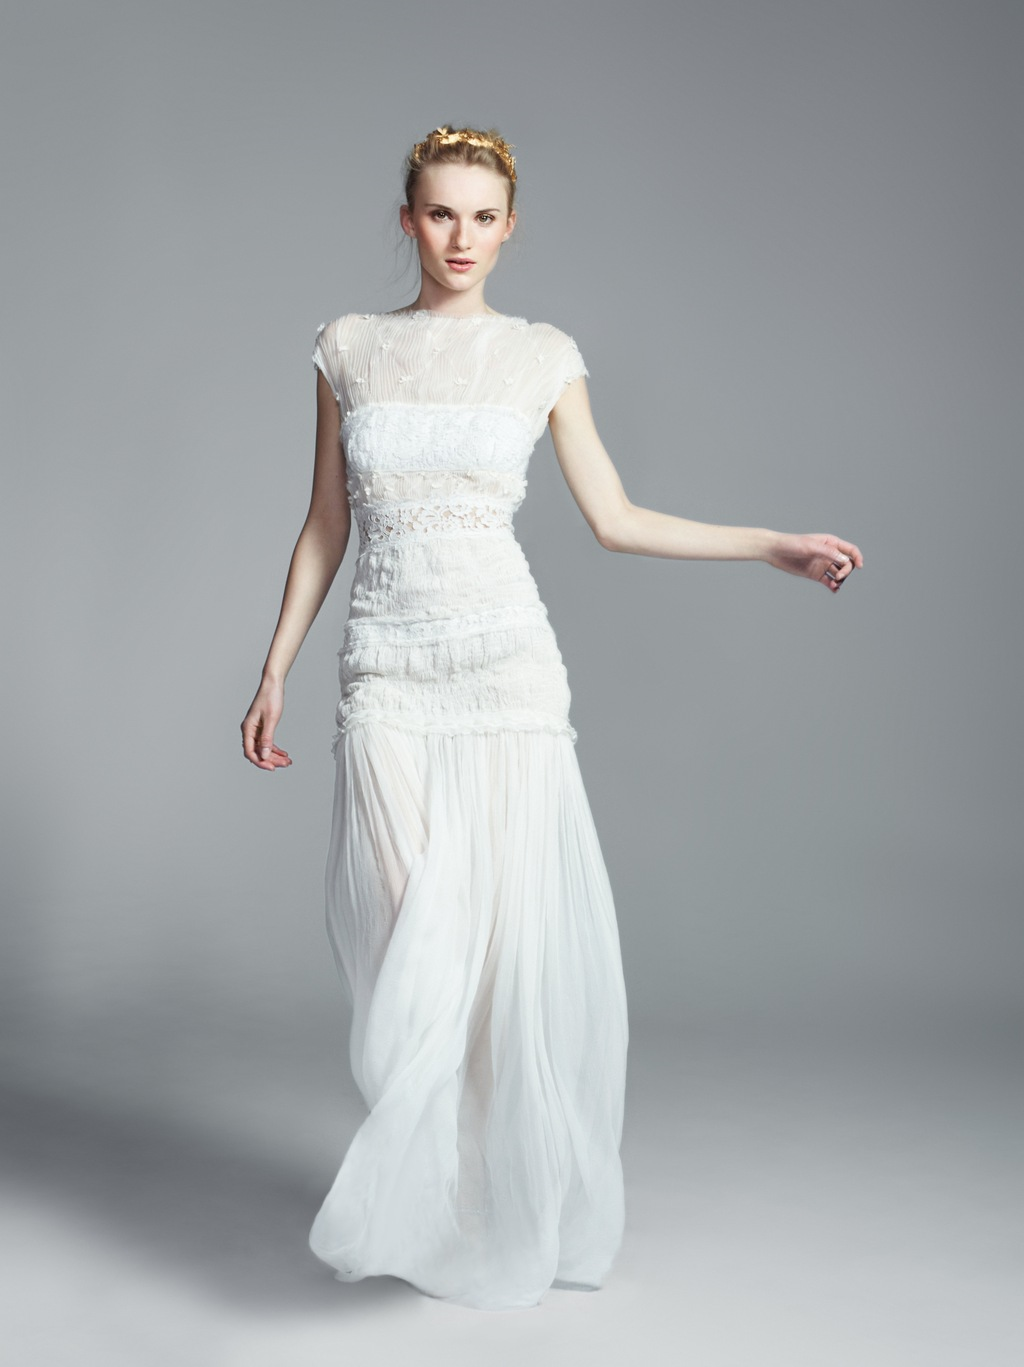 Nina-ricci-wedding-dress-2013-exclusive-bridal-designer-collection-from-net-a-porter.full